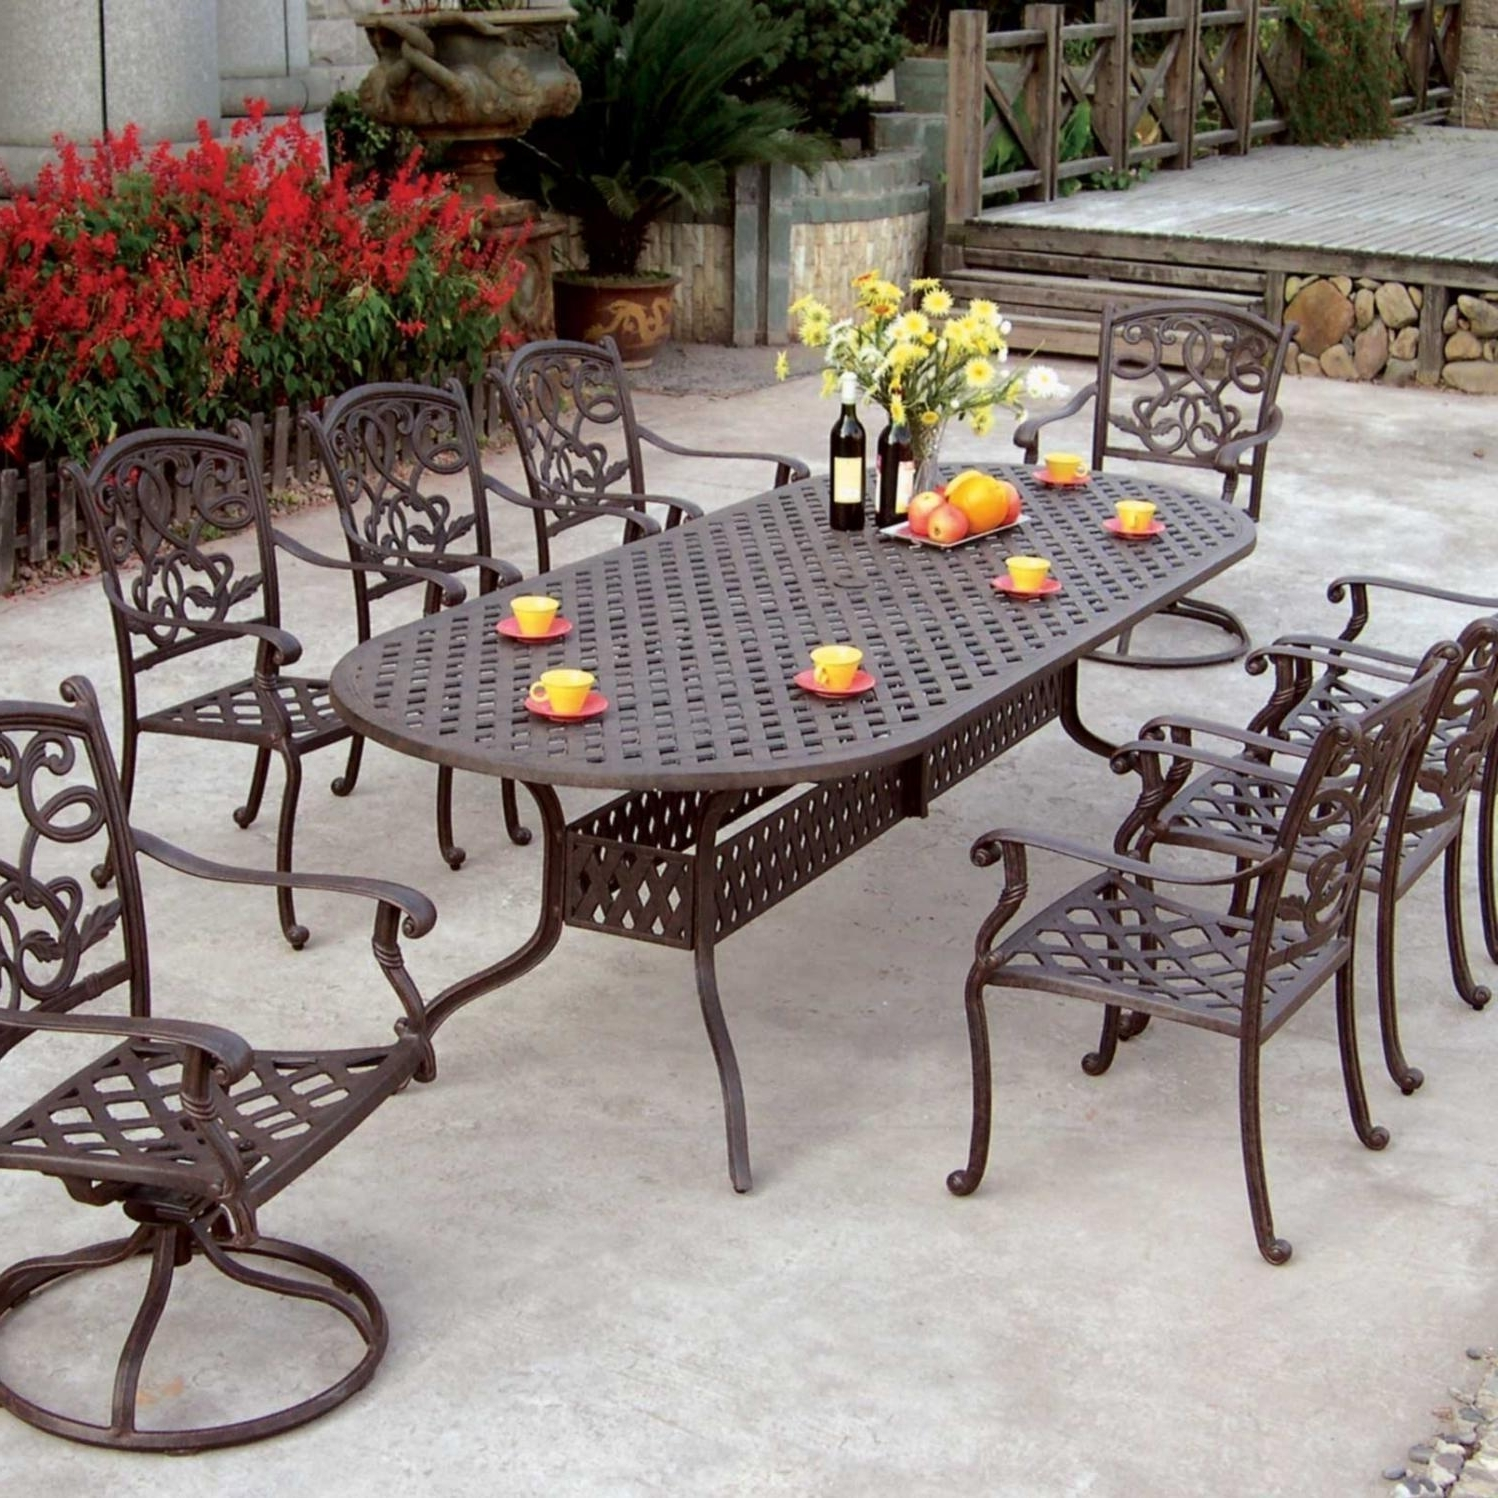 Fashionable Patio Conversation Dining Sets Within Cast Aluminum Patio Chairs Chairs Exquisite Aluminum Patio Furniture (View 19 of 20)